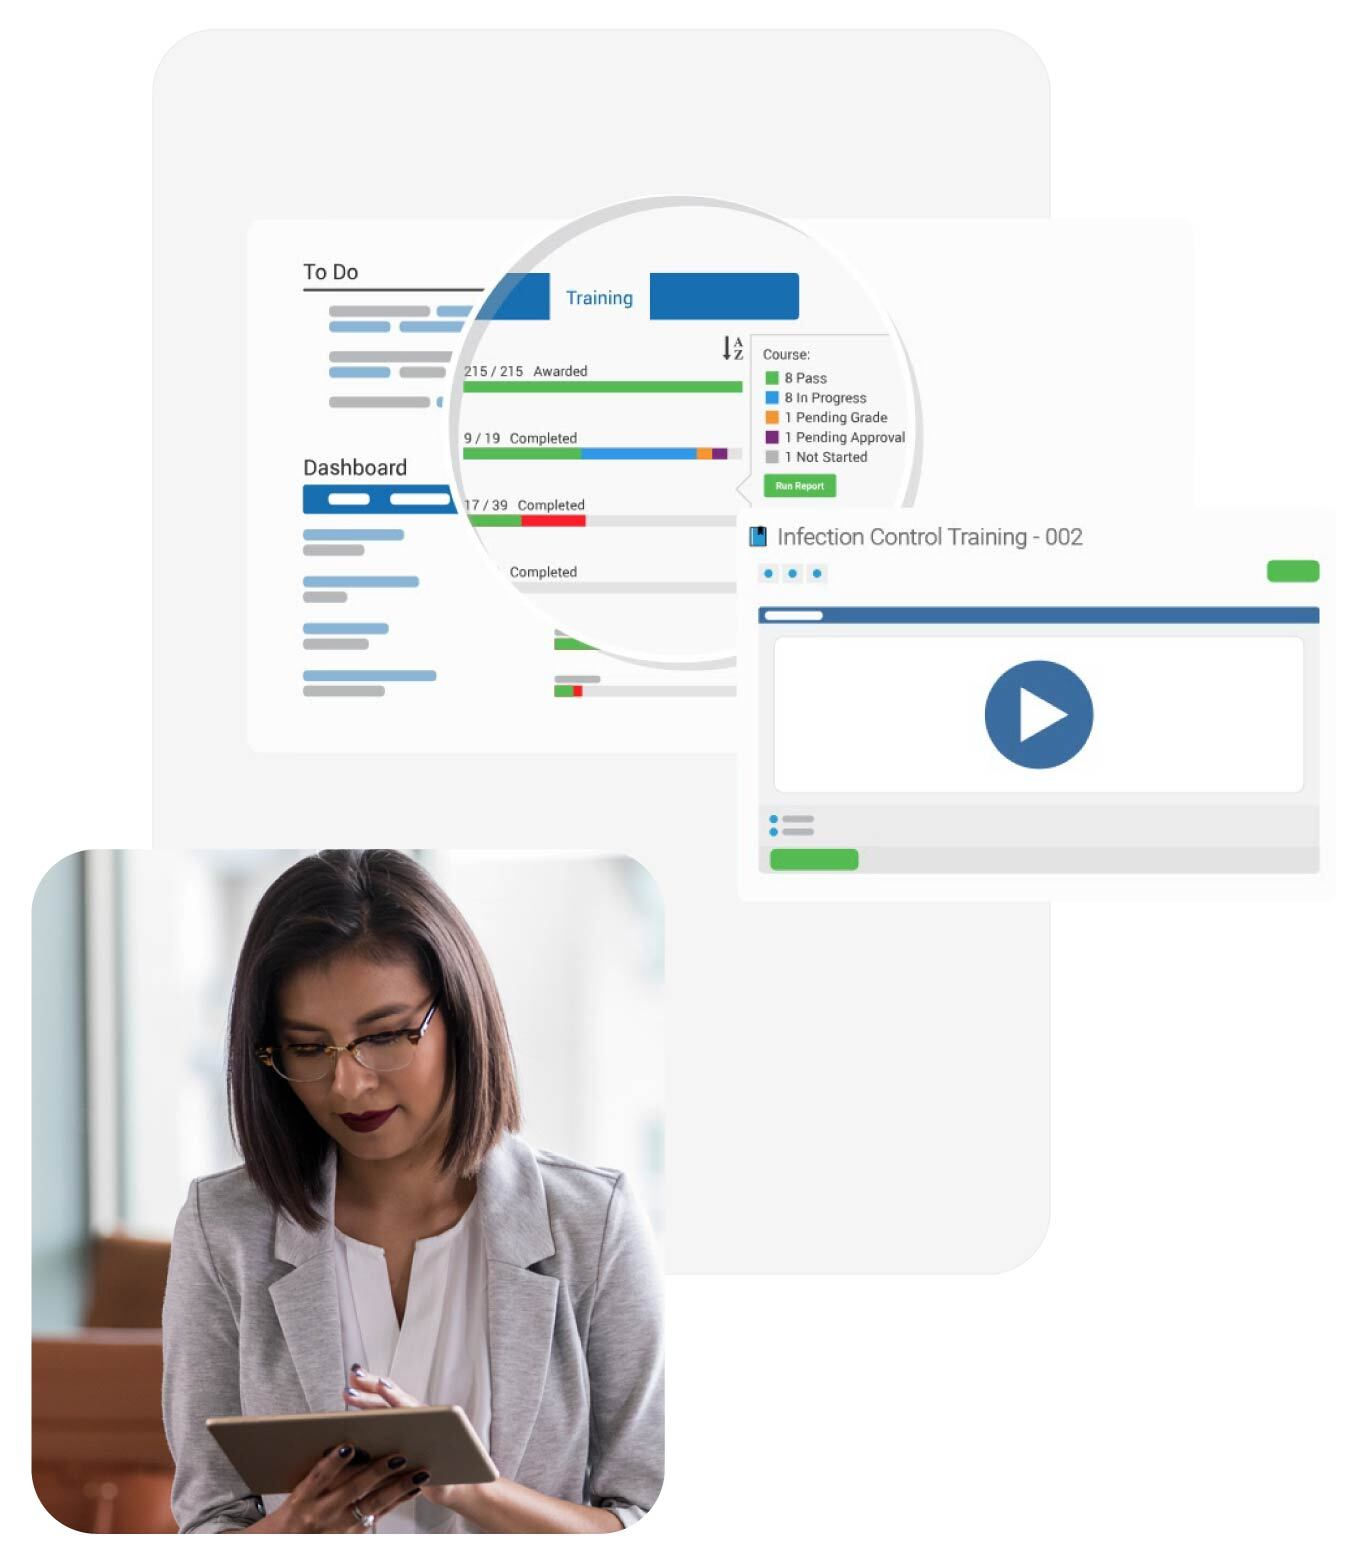 powerdms-partner-with-us-image-web-04